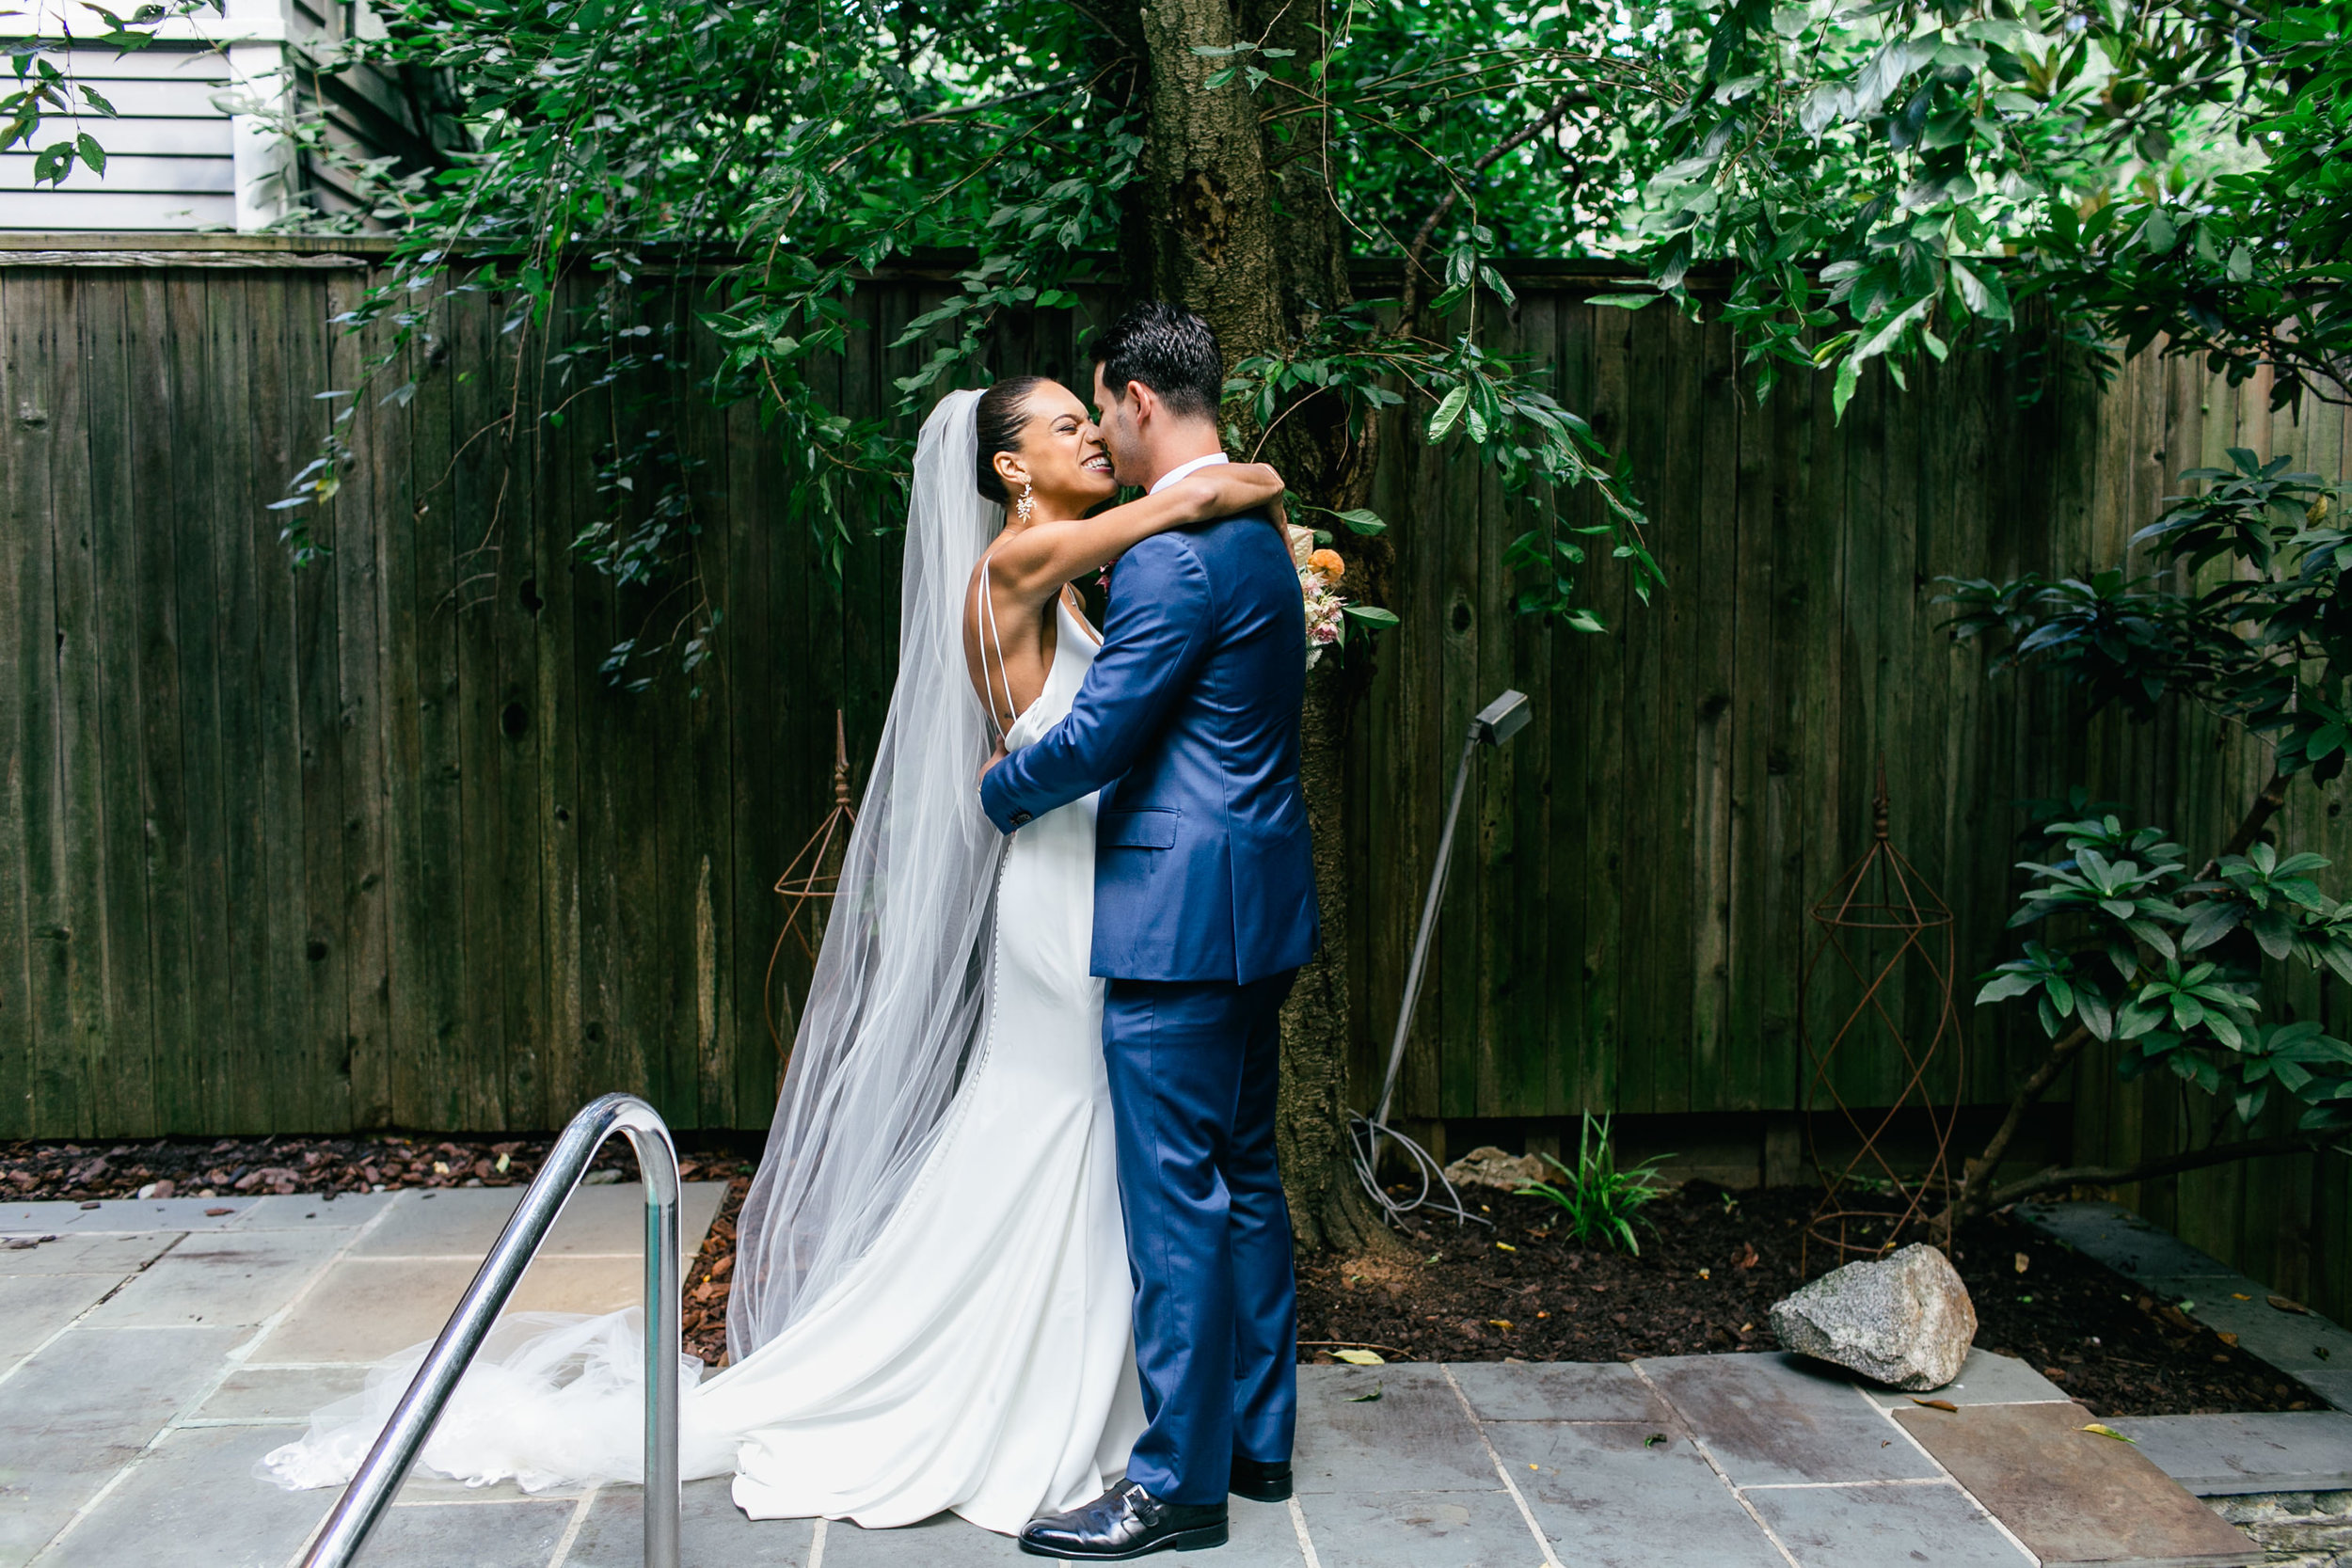 photography-wedding-weddings-natural-candid-dock 5 dc-washington dc-philadelphia-mixed race-editorial-modern-fine-art-004.JPG